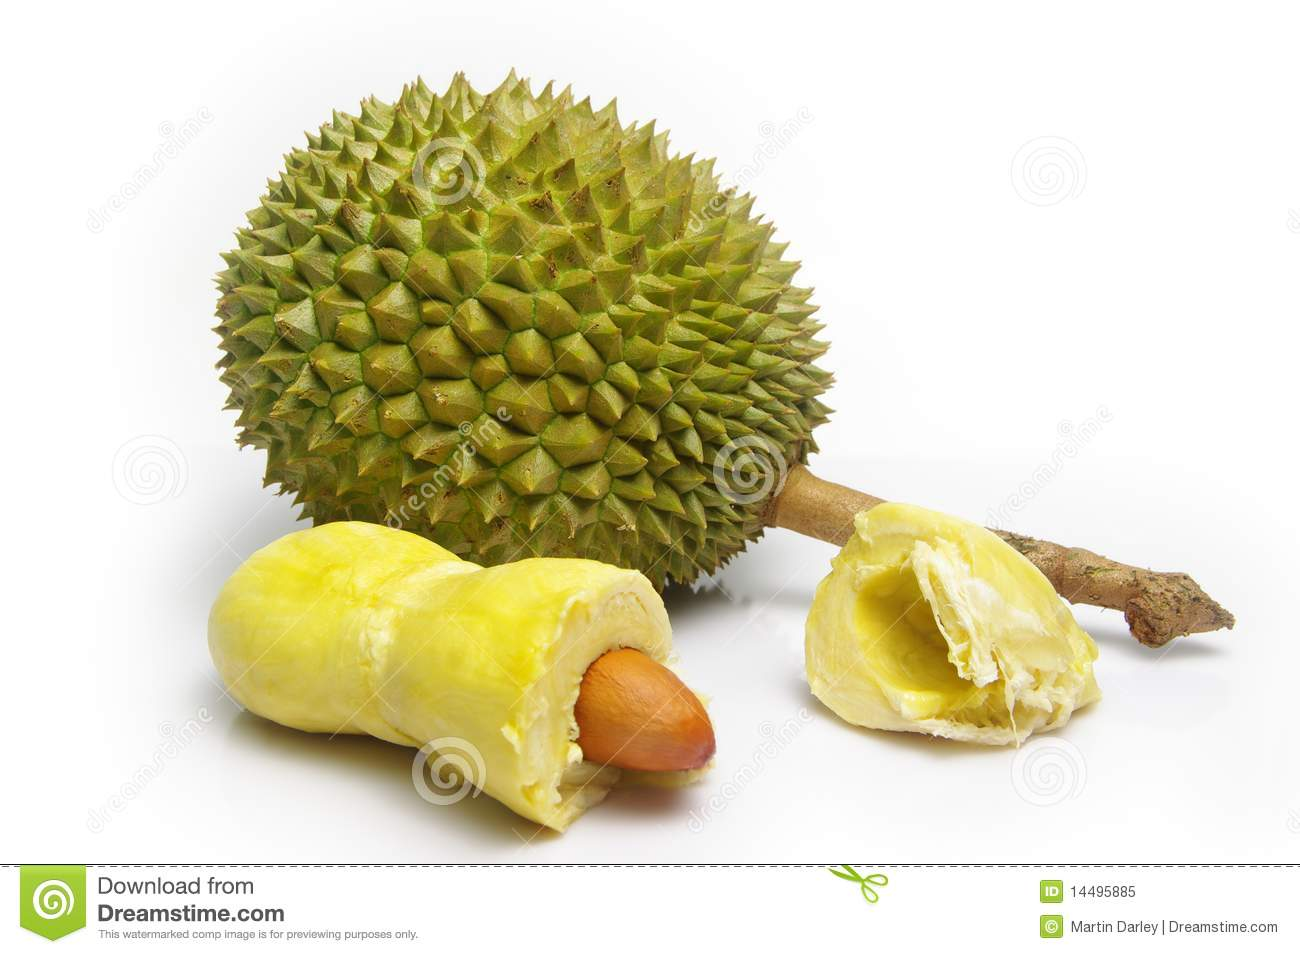 Thorny, pungent Durian fruit (Durio zibethinus). Whole fruit and ...